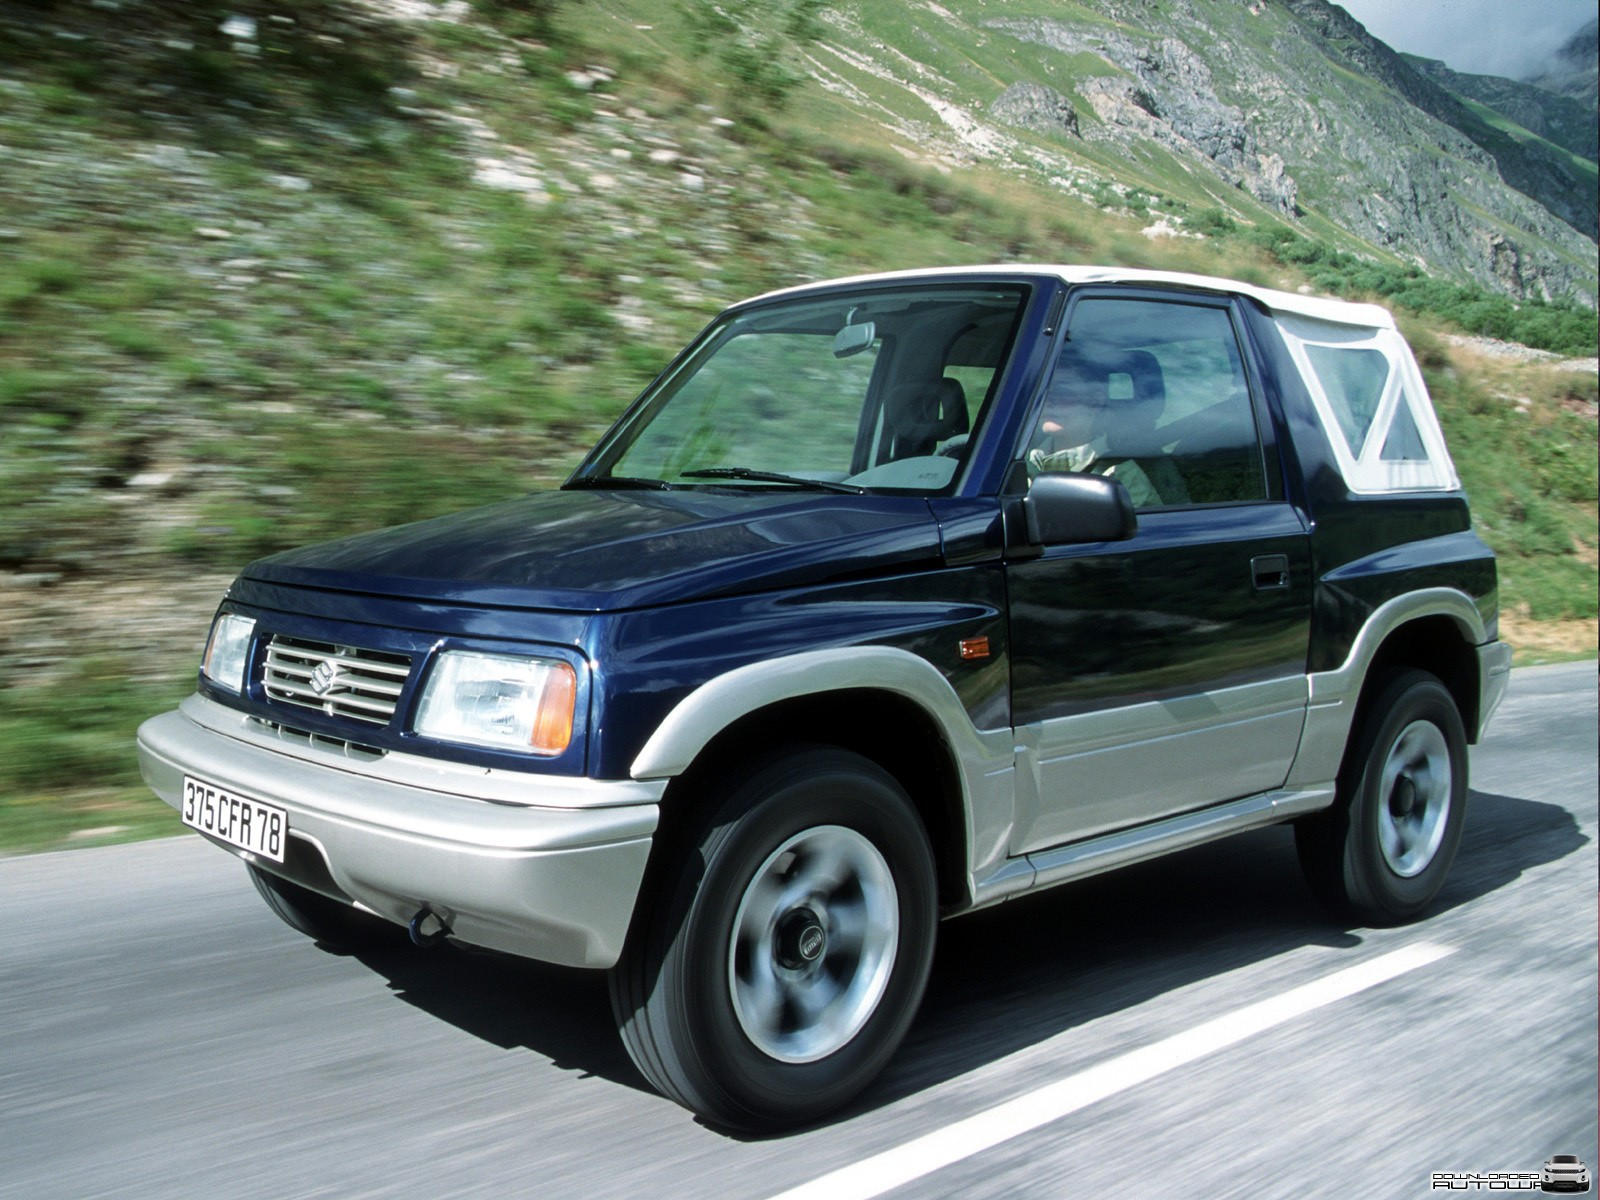 Suzuki Vitara 1989 Review Amazing Pictures And Images Look At